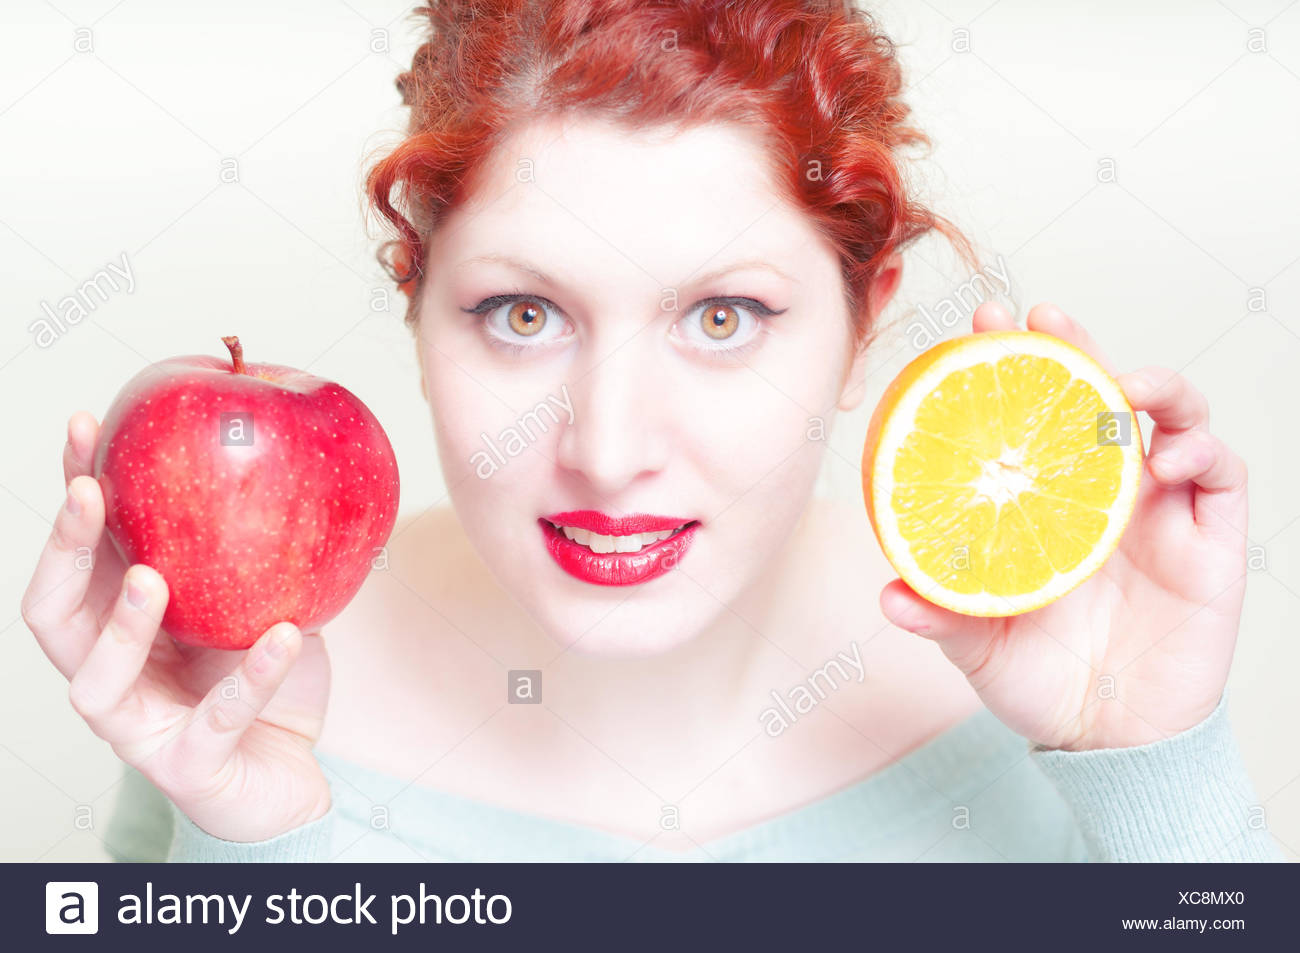 Beautiful Red Hair And Lips Girl With Orange And Apple Stock Photo